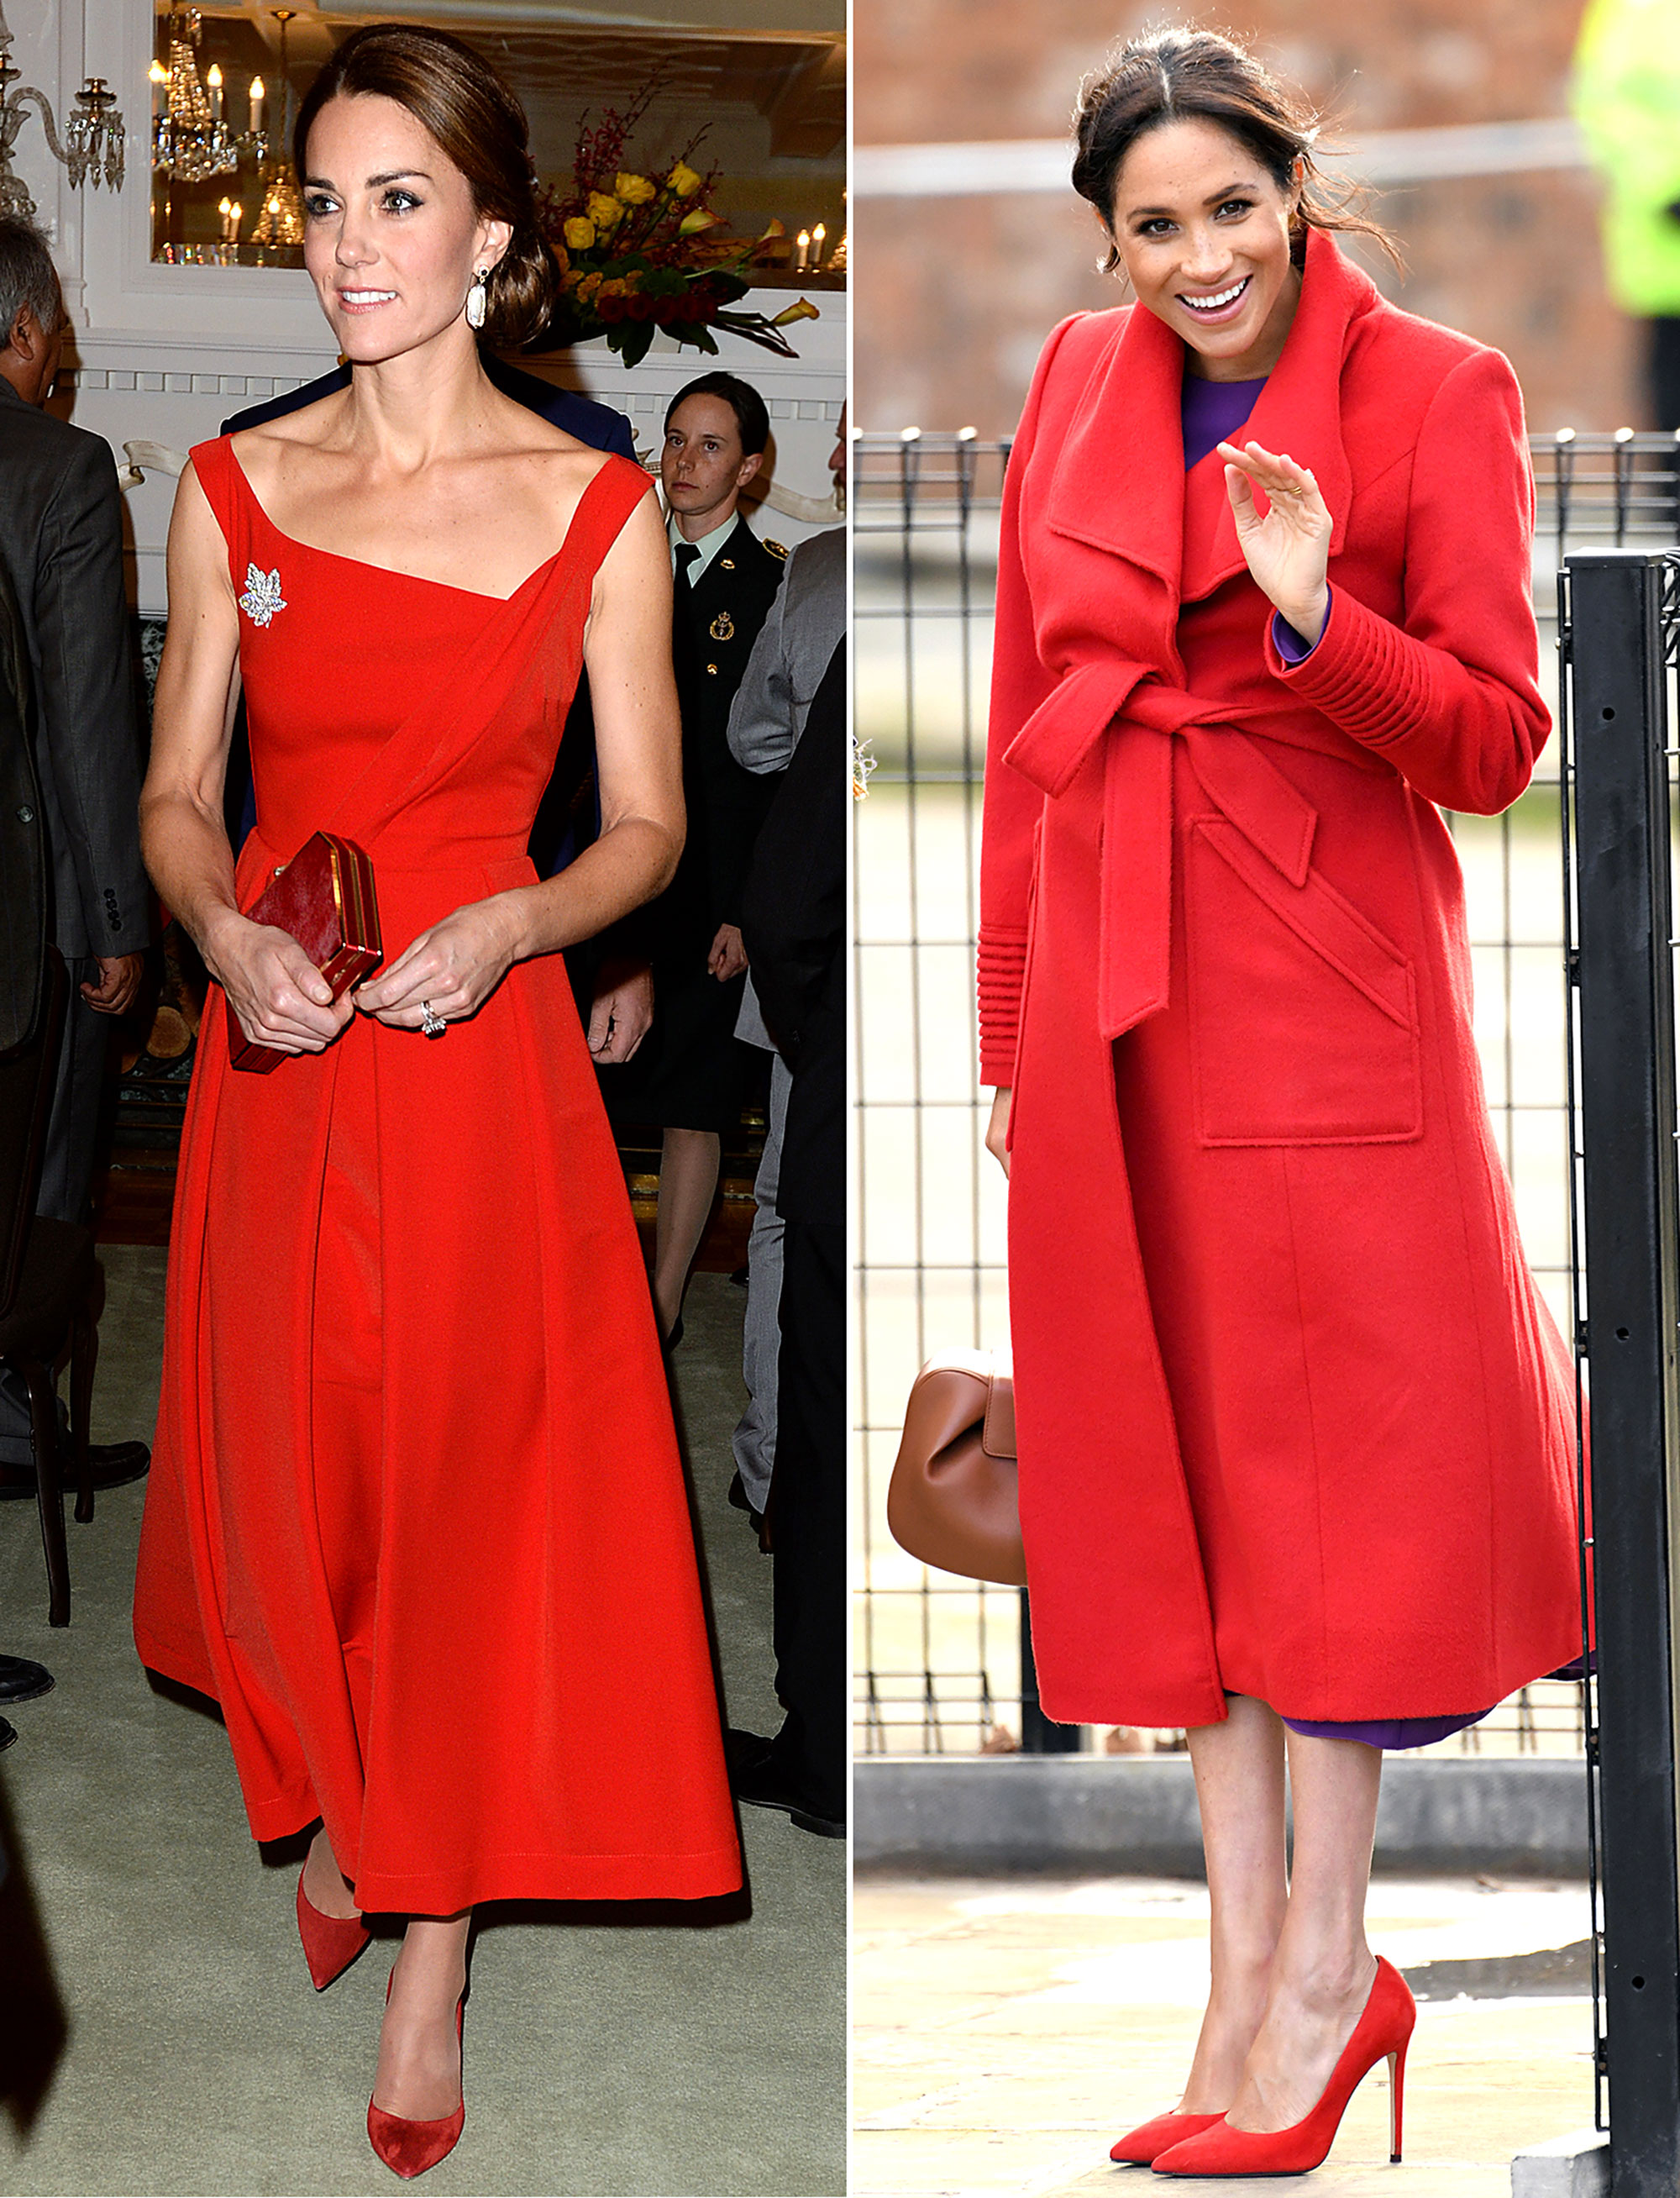 The Royal Style Secret Meghan Markle Stole From Kate Middleton - It doesn't get much more regal than head-to-toe red, as Kate proved in an asymmetrical Preen dress and matching accessories during her September 2016 trip to Canada. More recently, Meghan looked every bit the royal in Birkenhead, England, in January 2019 in a crimson Sentaler wrap coat and matching Stuart Weitzman pumps.